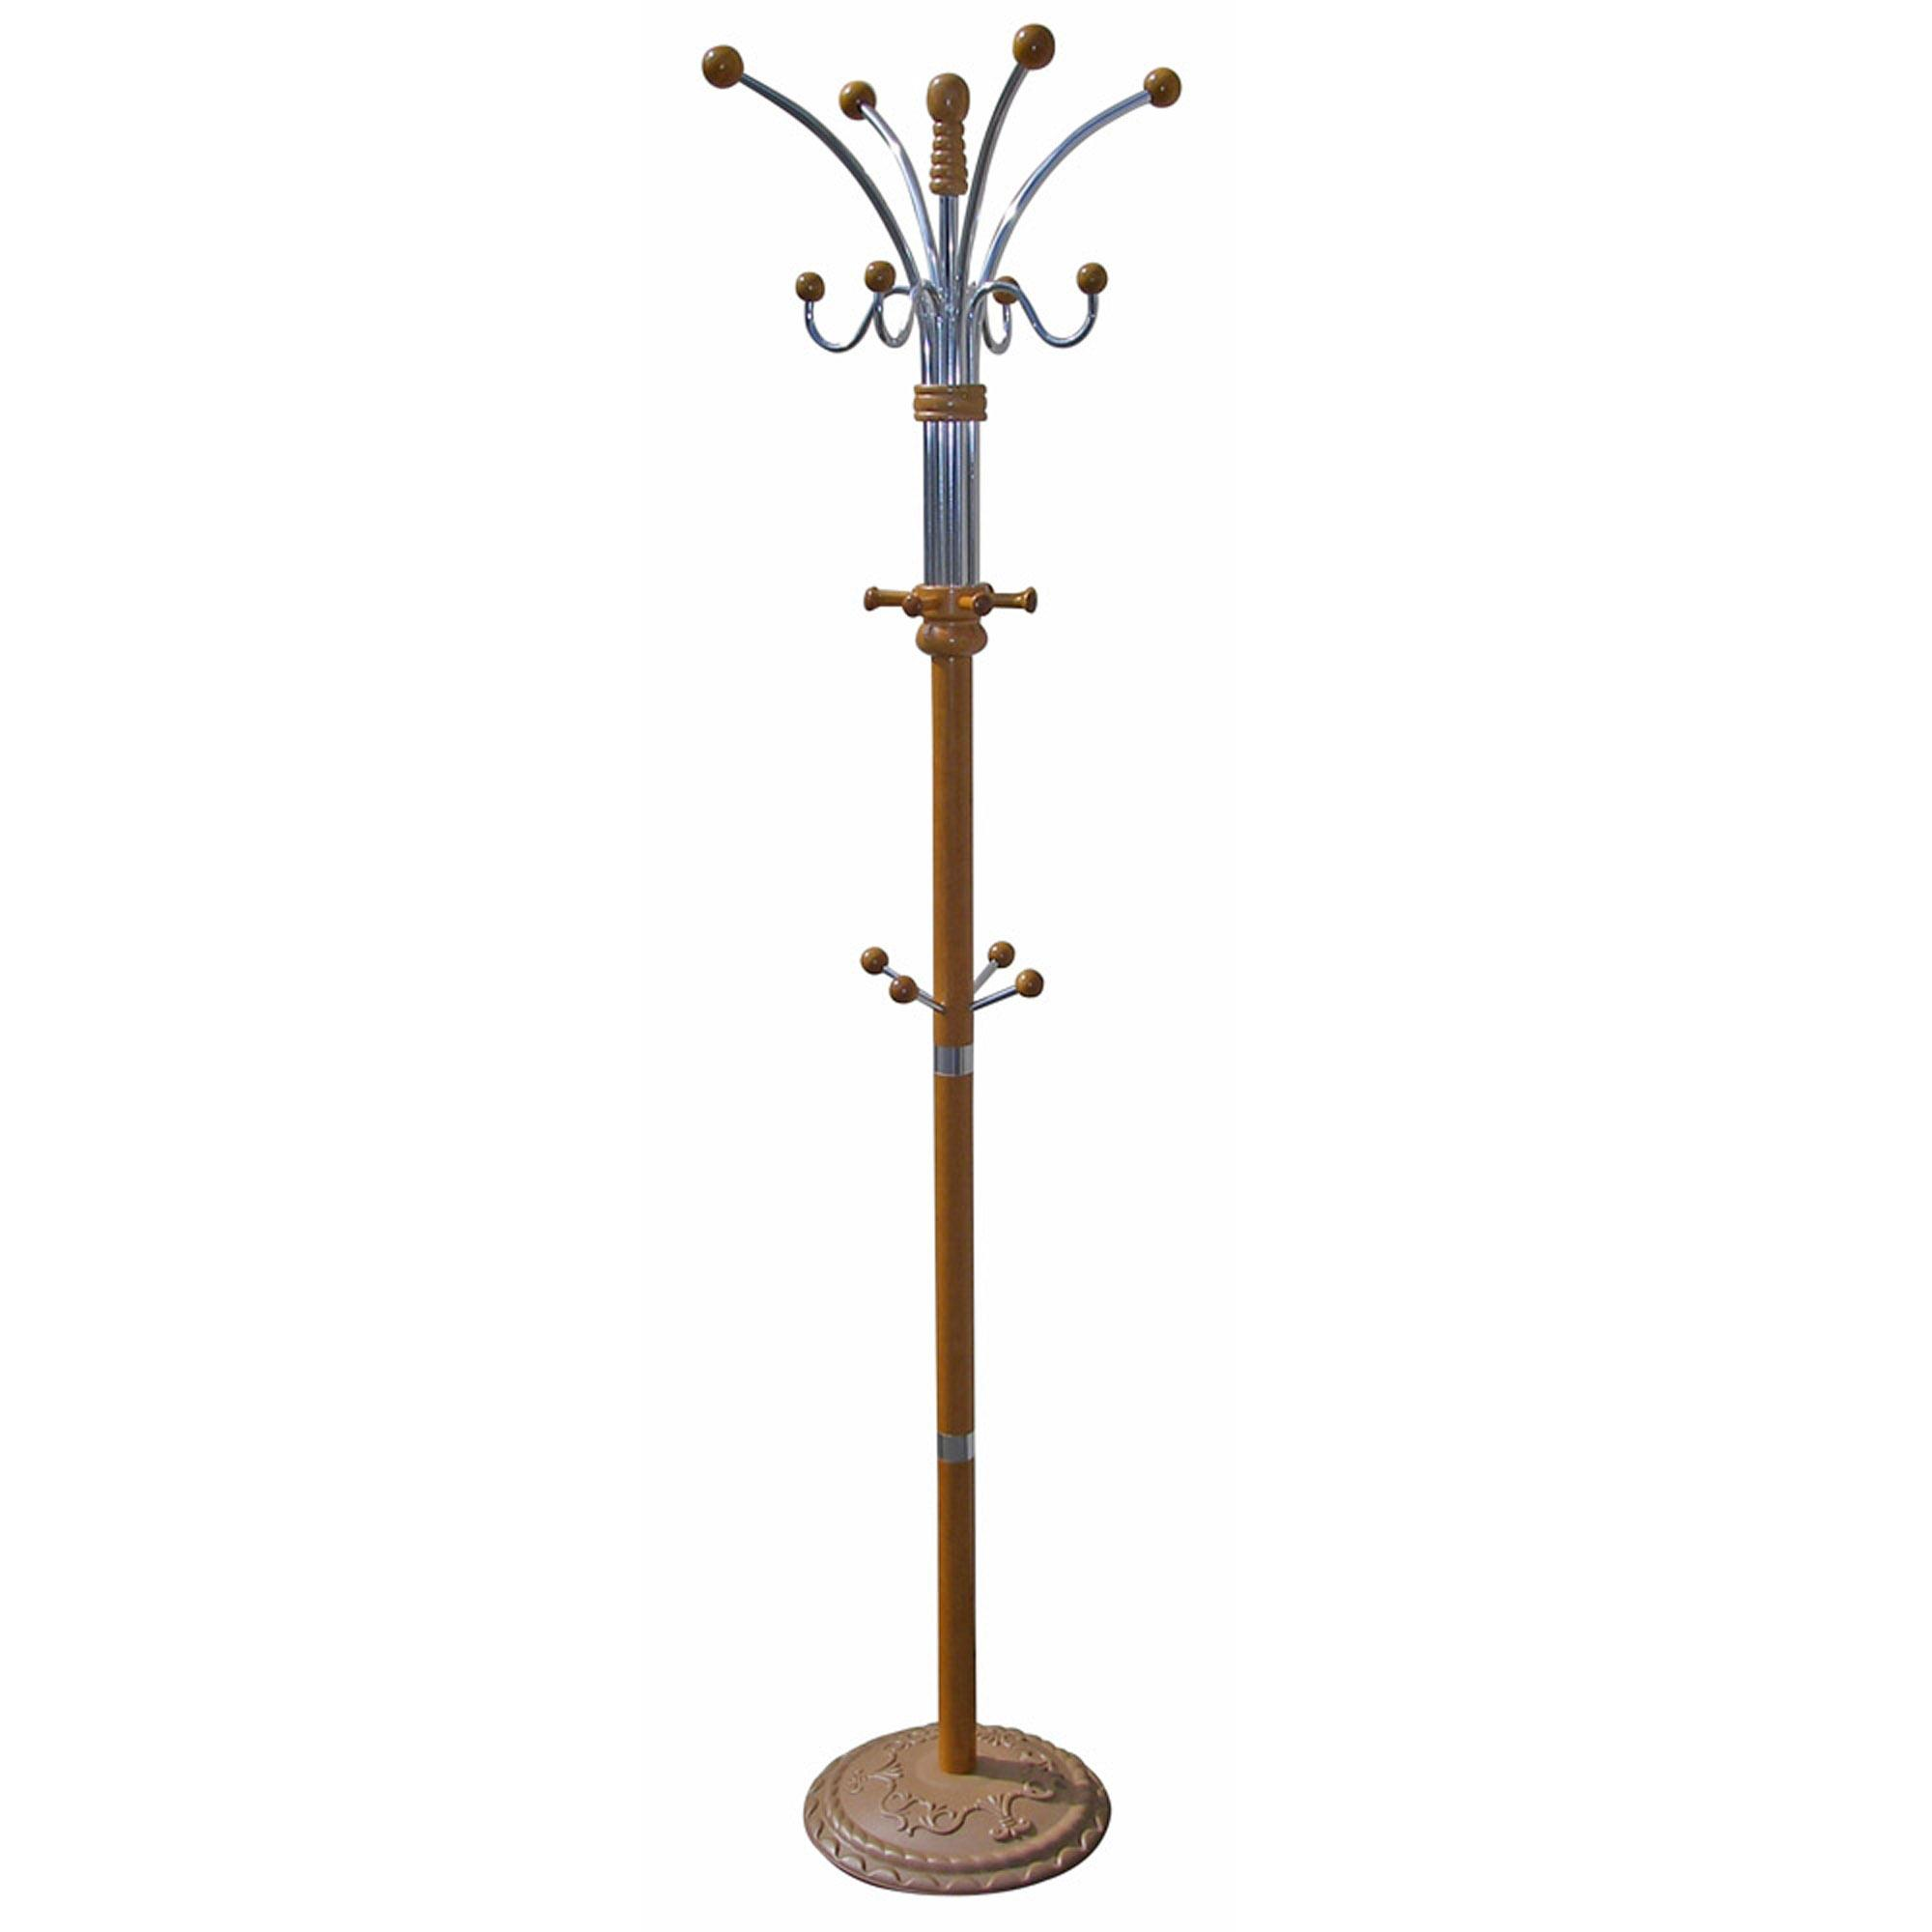 ORE International Wooden Coat Rack by OJ Commerce $73.77